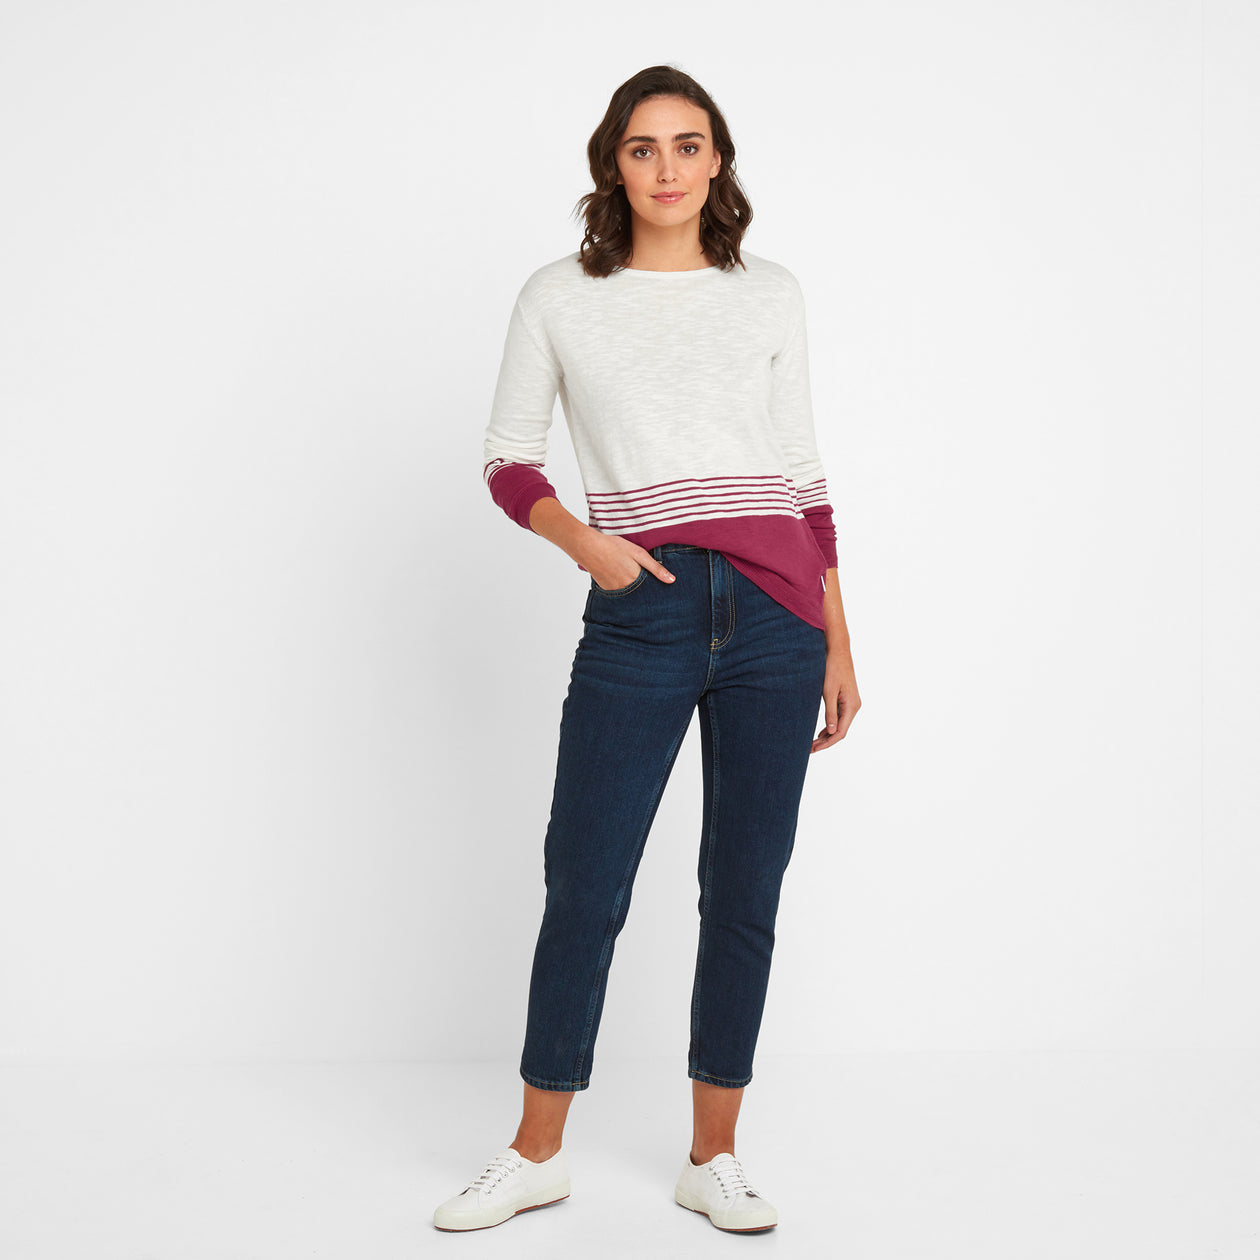 Dolly Womens Stripe Jumper - Snow White/Sangria image 4